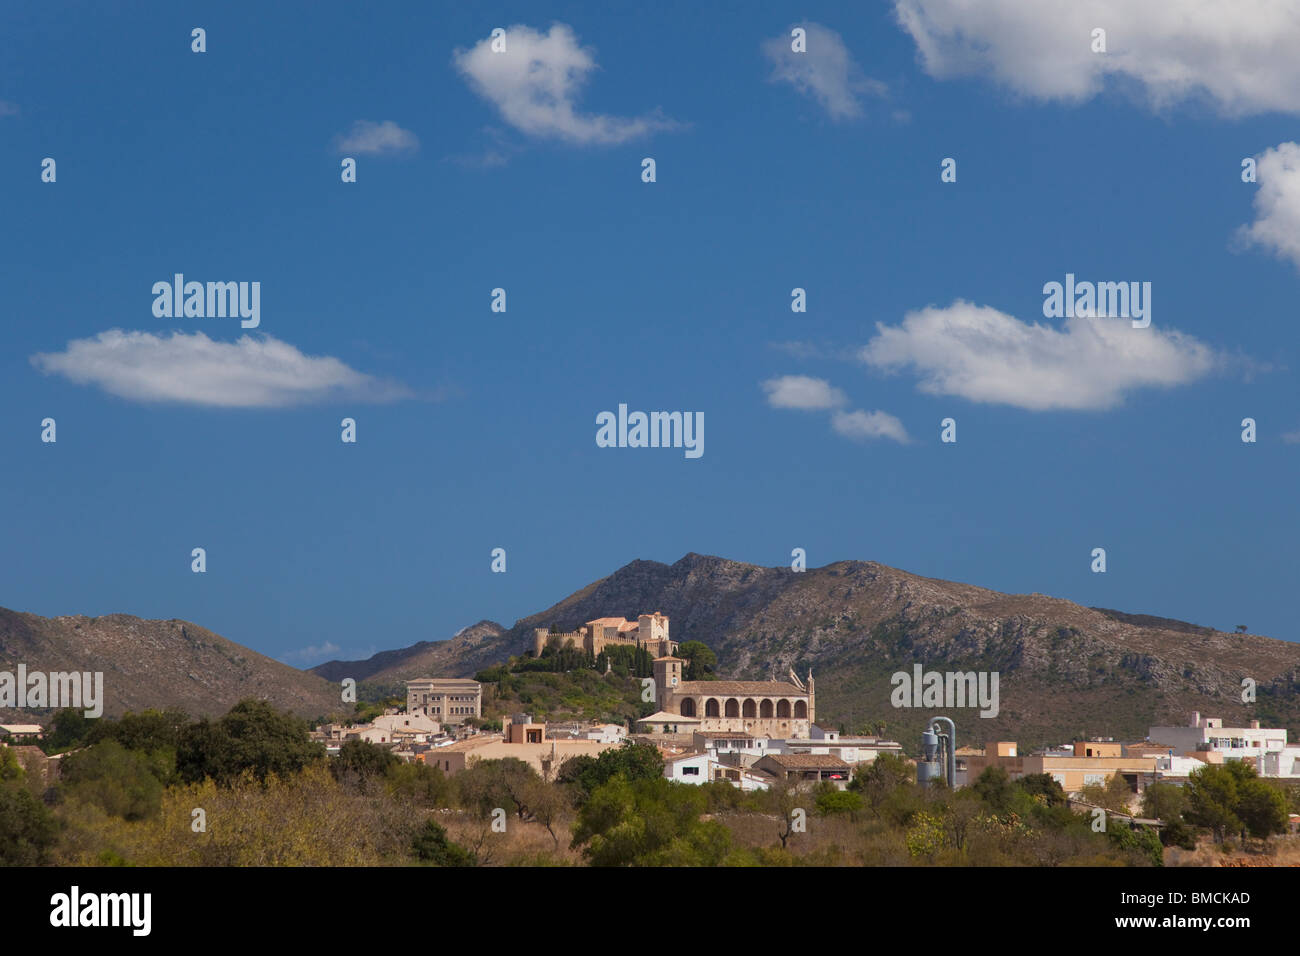 Hilltop town of Arta in northeastern Majorca Mallorca Spain Europe EU - Stock Image